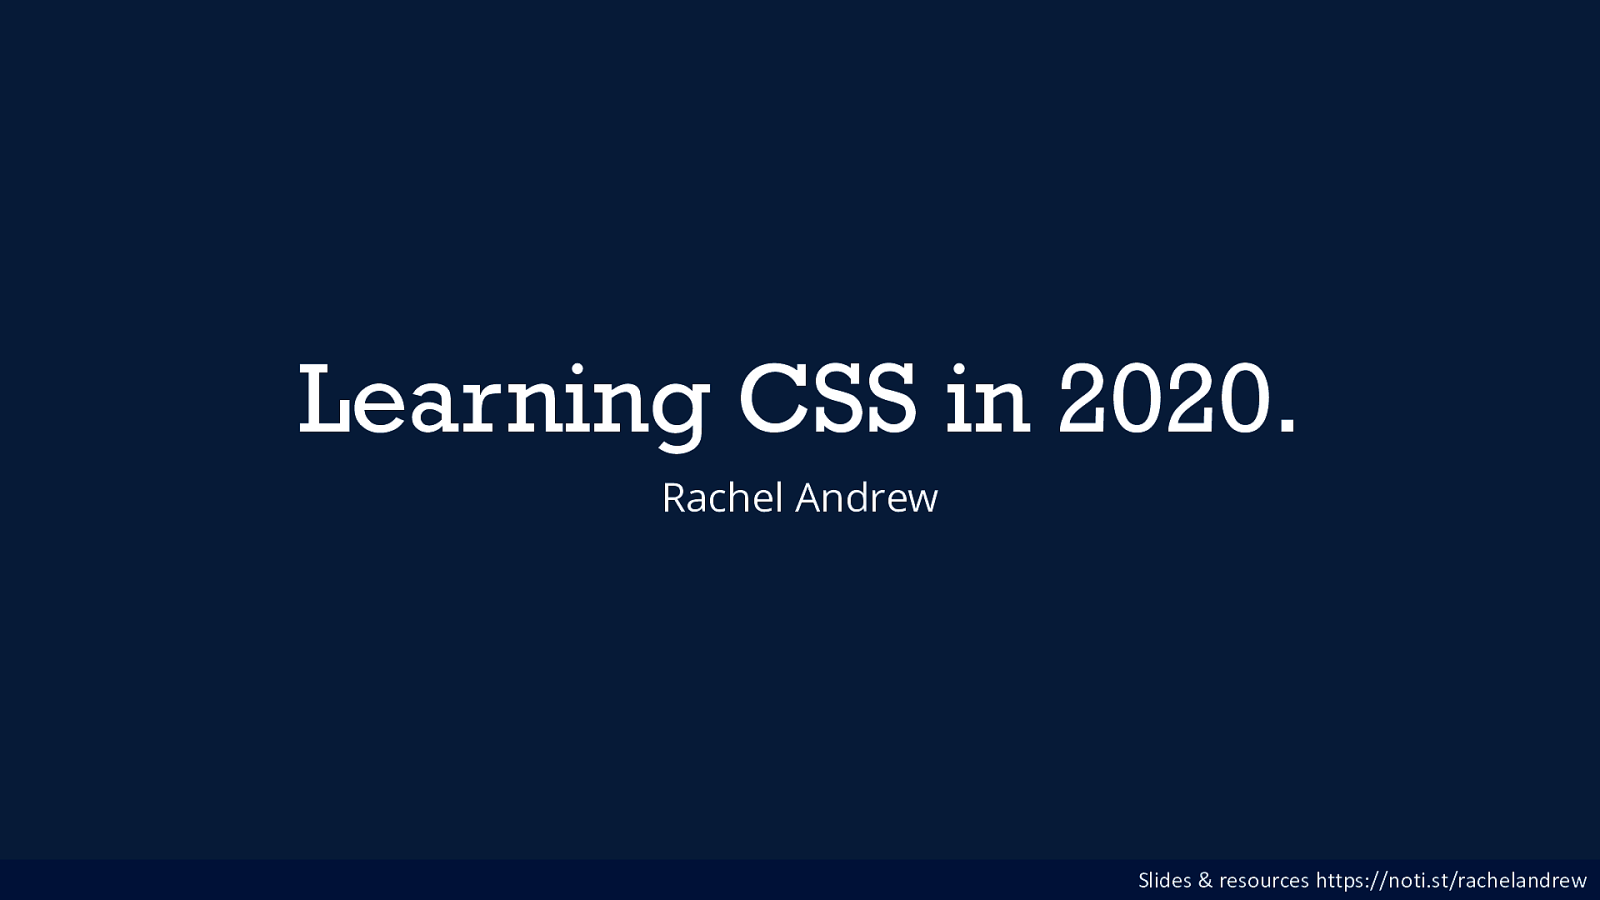 Learning CSS in 2020